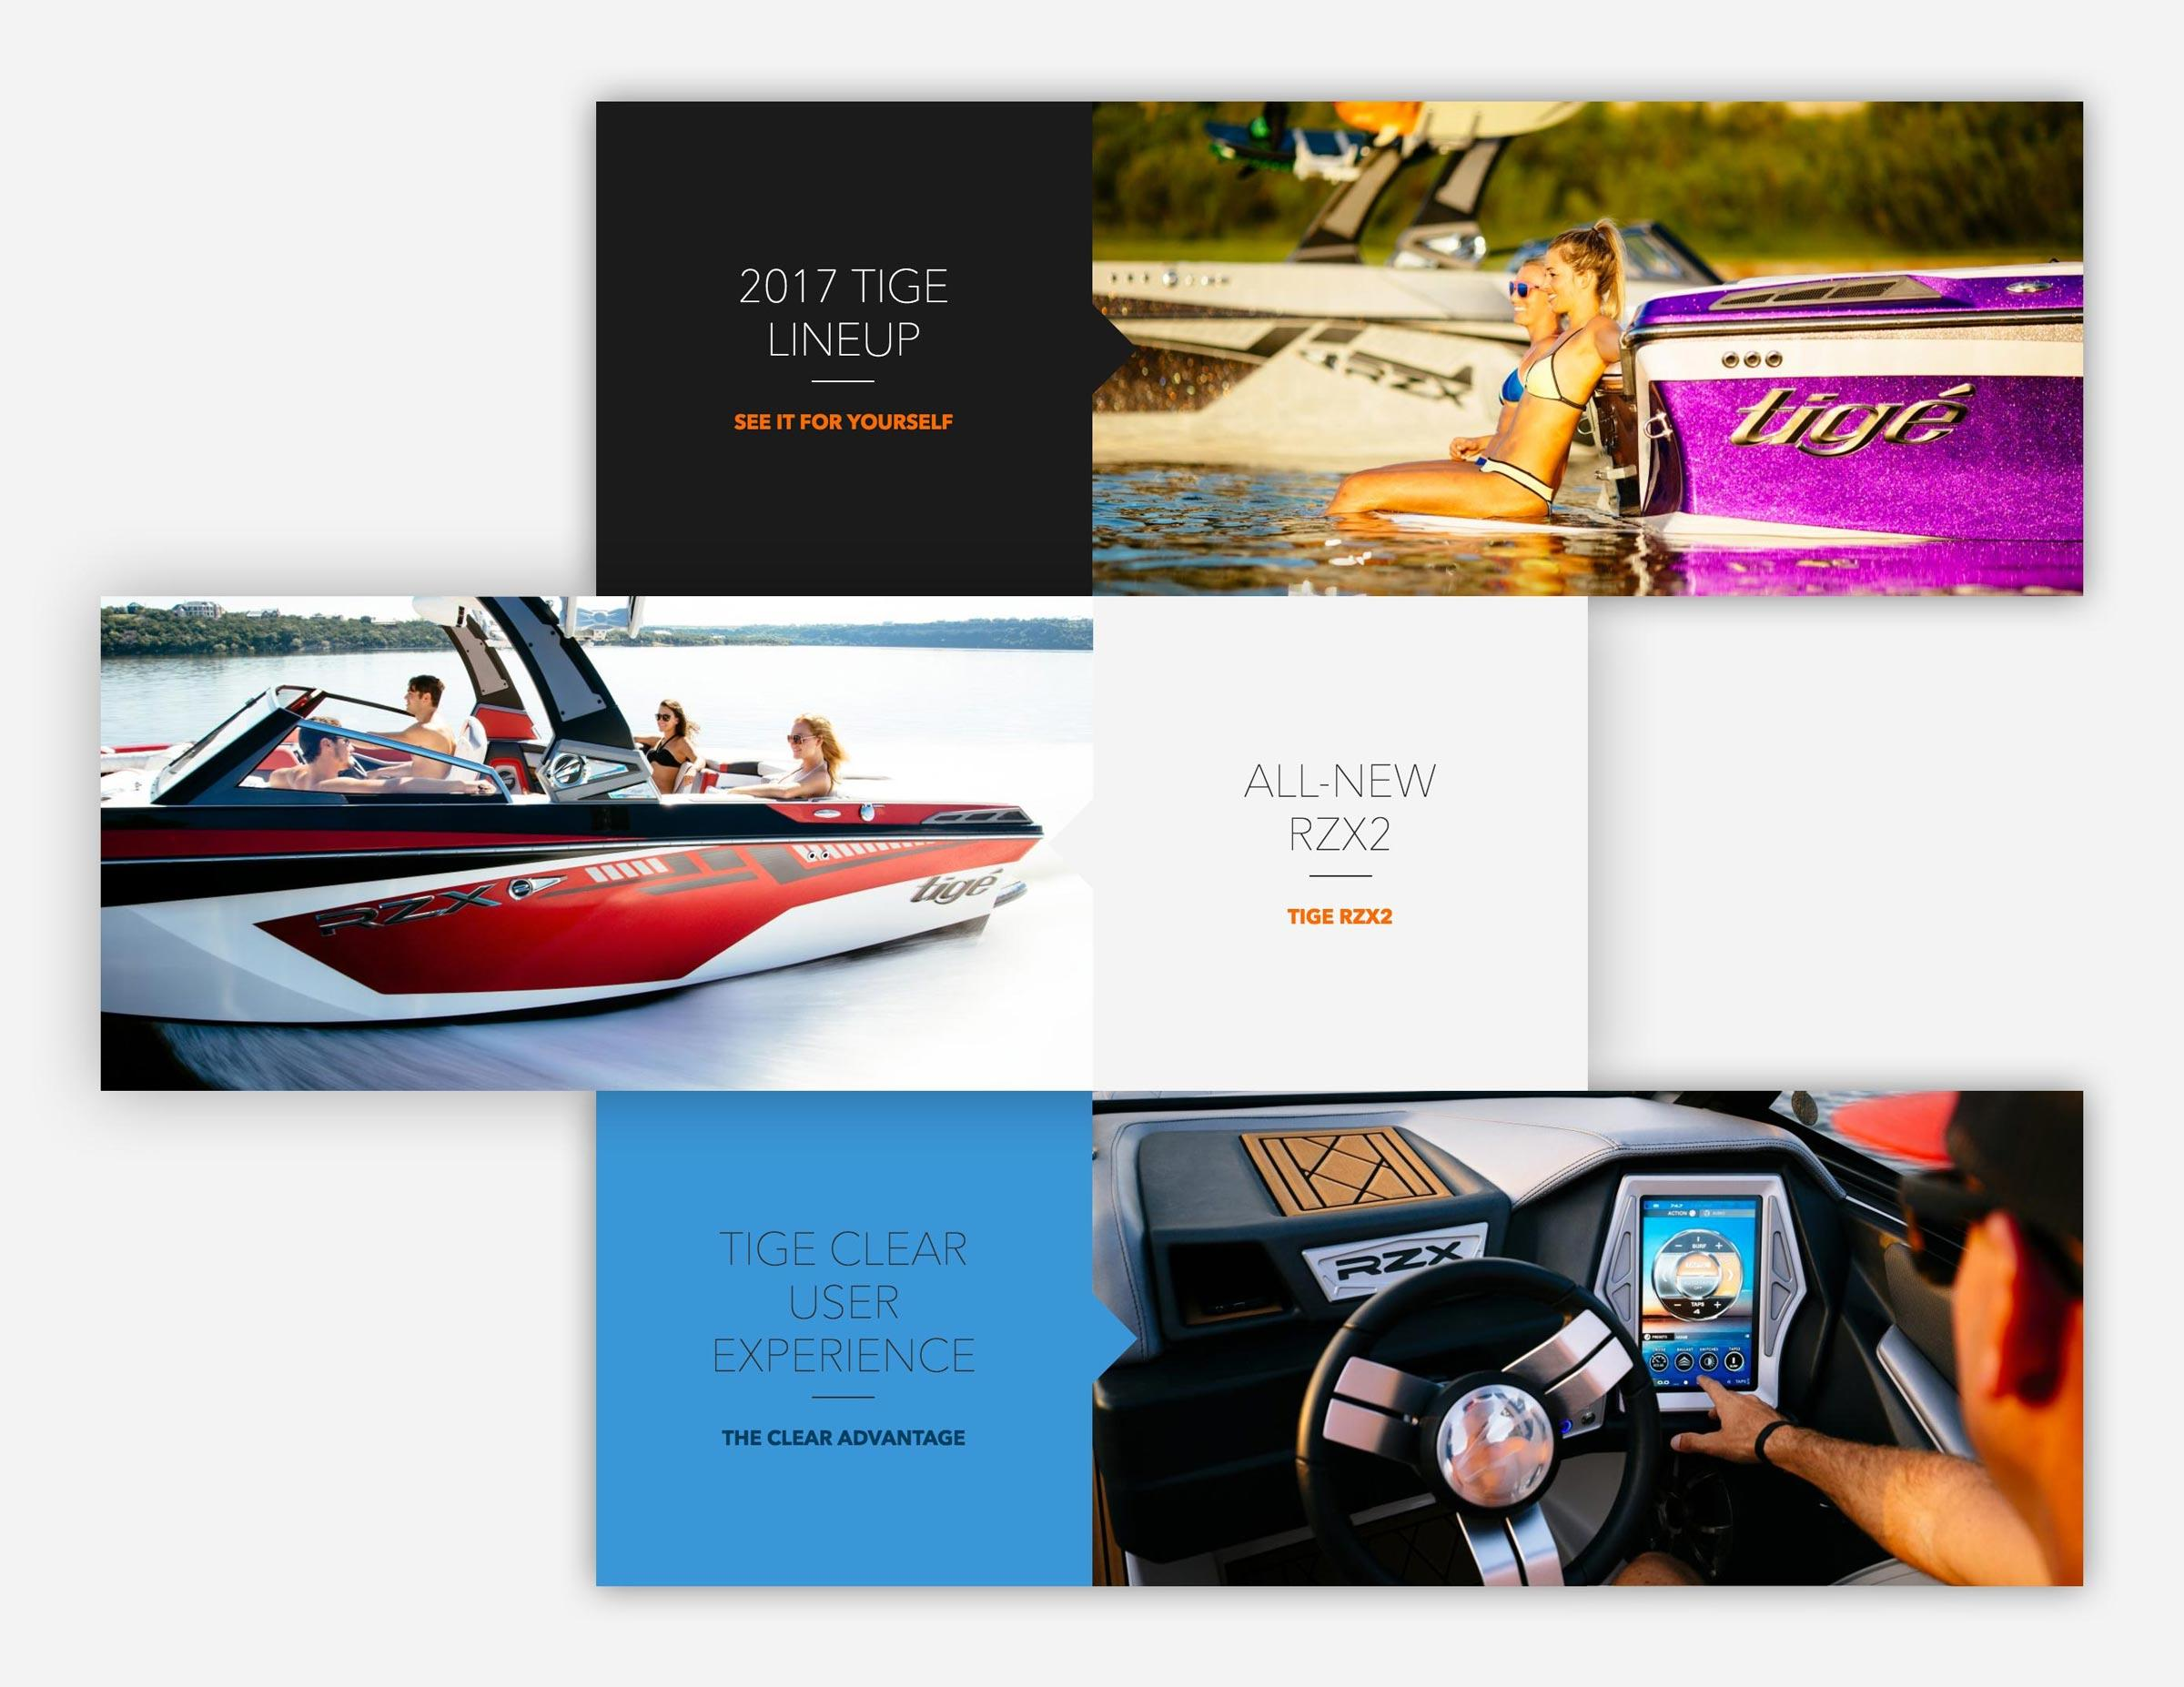 Website Design for Tige Boats